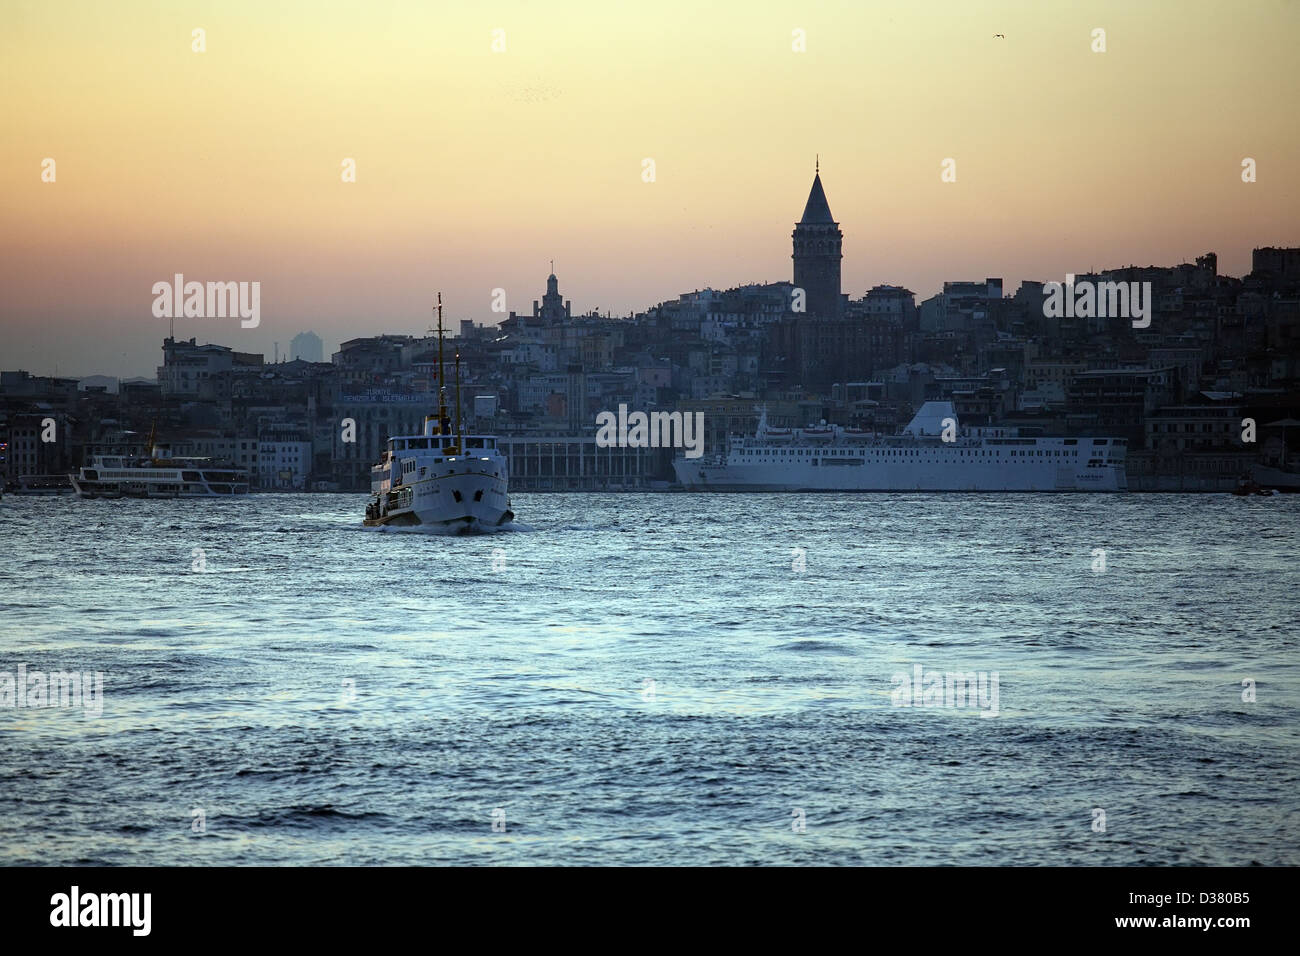 Istanbul, Turkey, shipping on the Bosporus Strait at the output of the Golden Horn - Stock Image